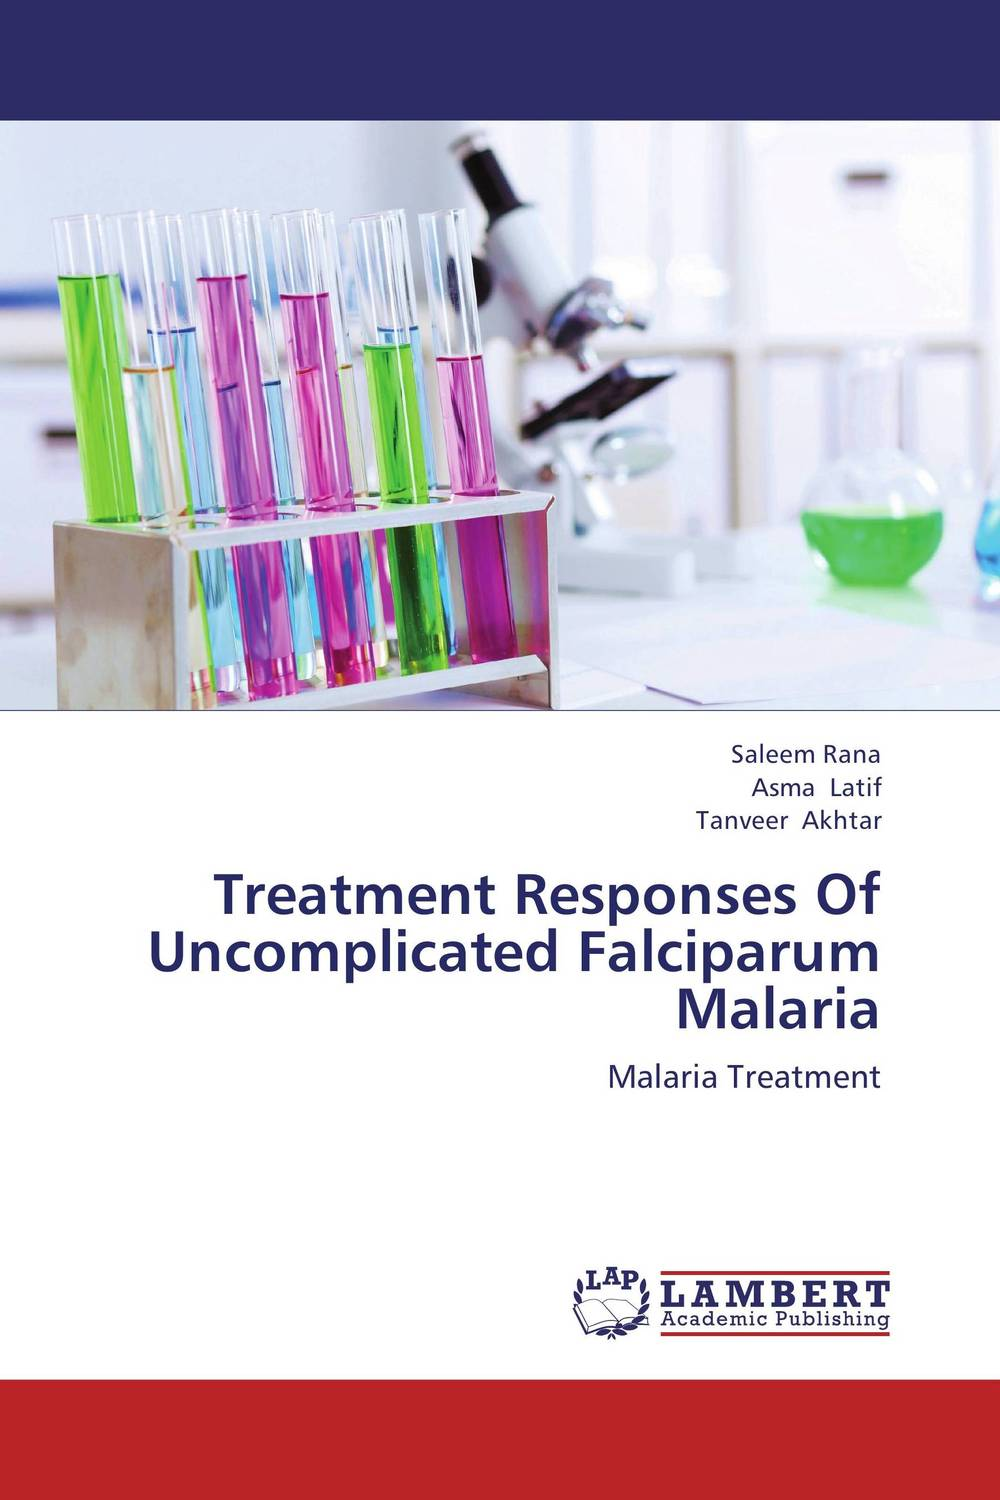 Treatment Responses Of Uncomplicated Falciparum Malaria found in brooklyn